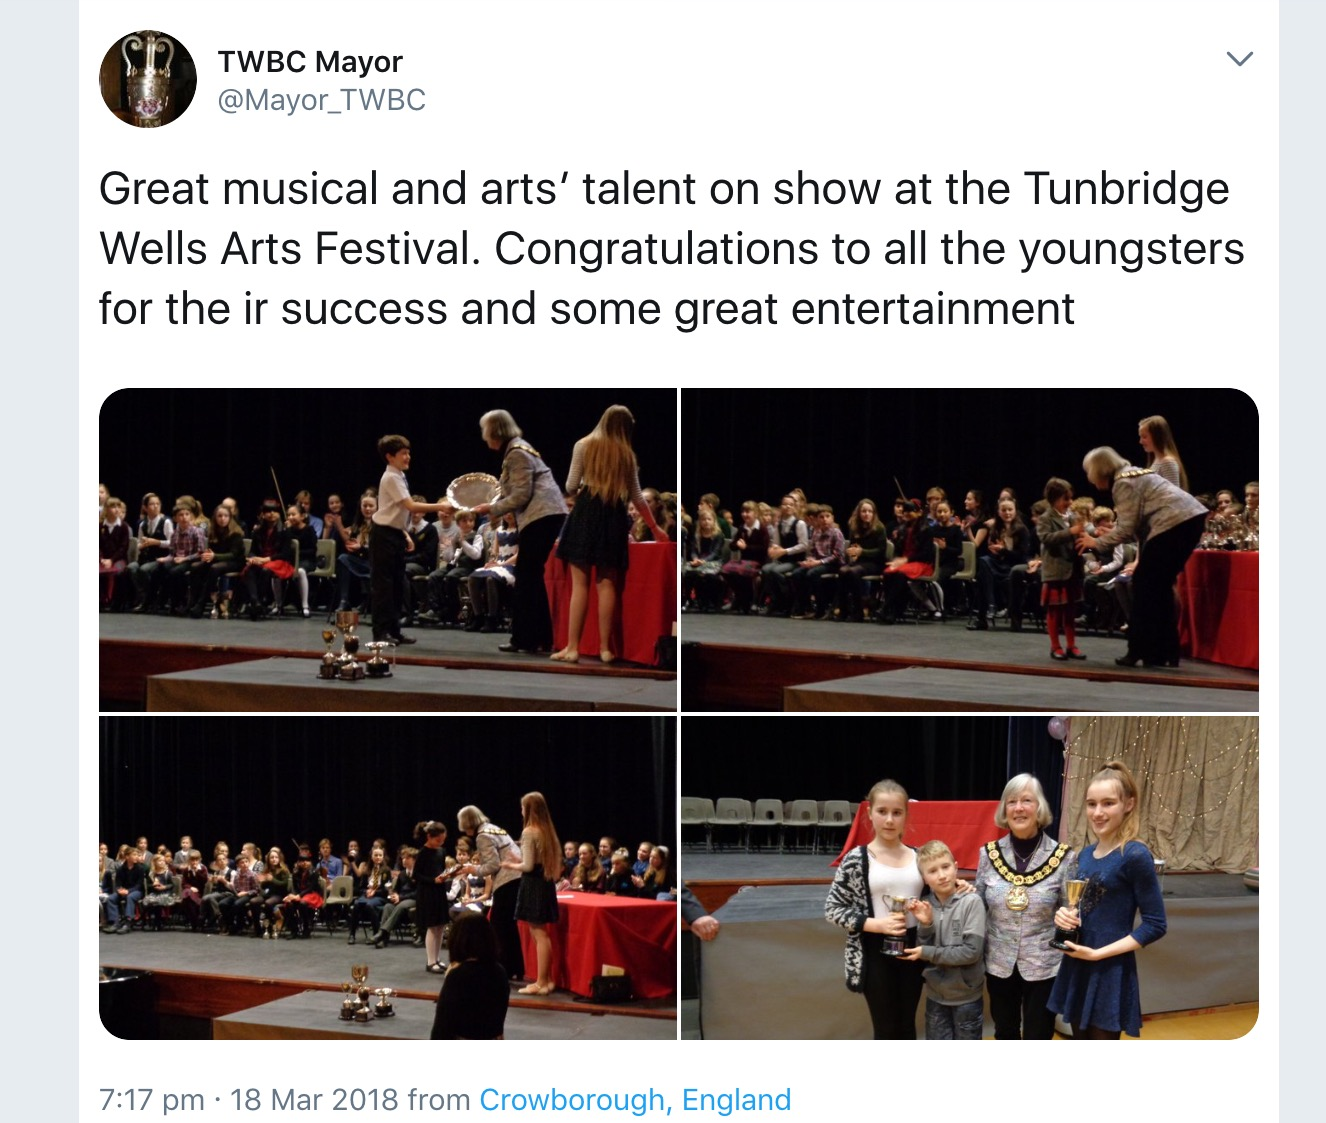 The Mayors twitter